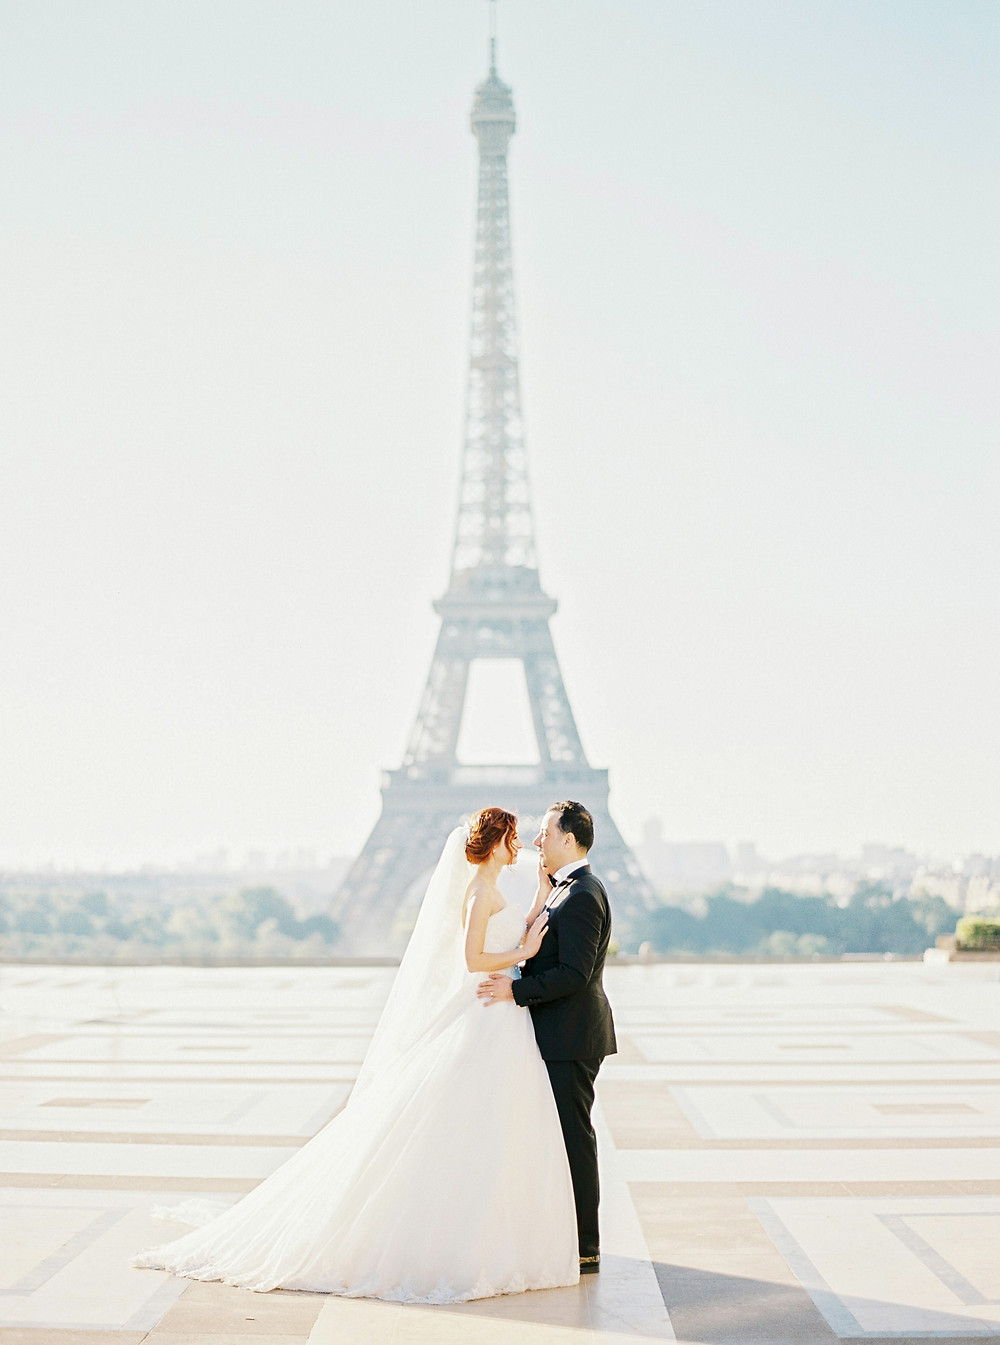 Paris honeymoon photoshoot